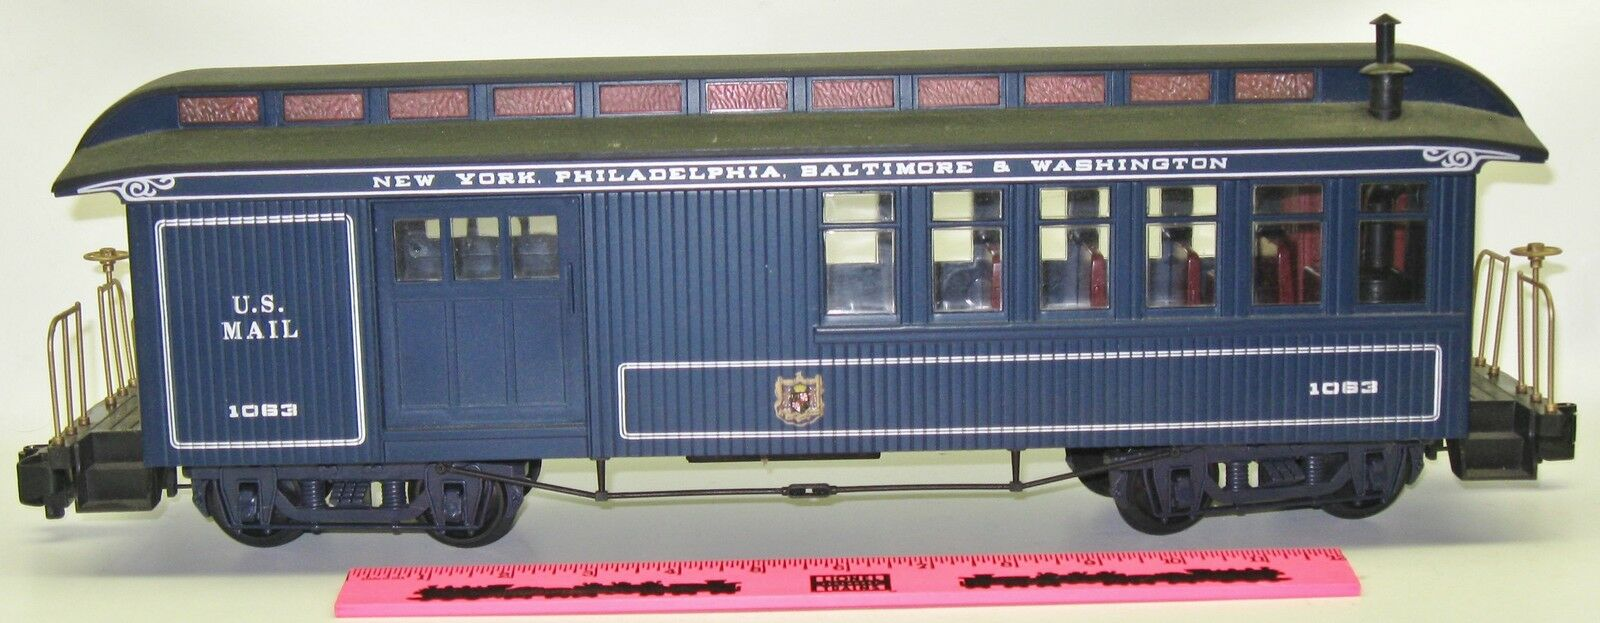 Bachmann 1063 New York, Philadelphia, Baltimore & Washington US Mail car